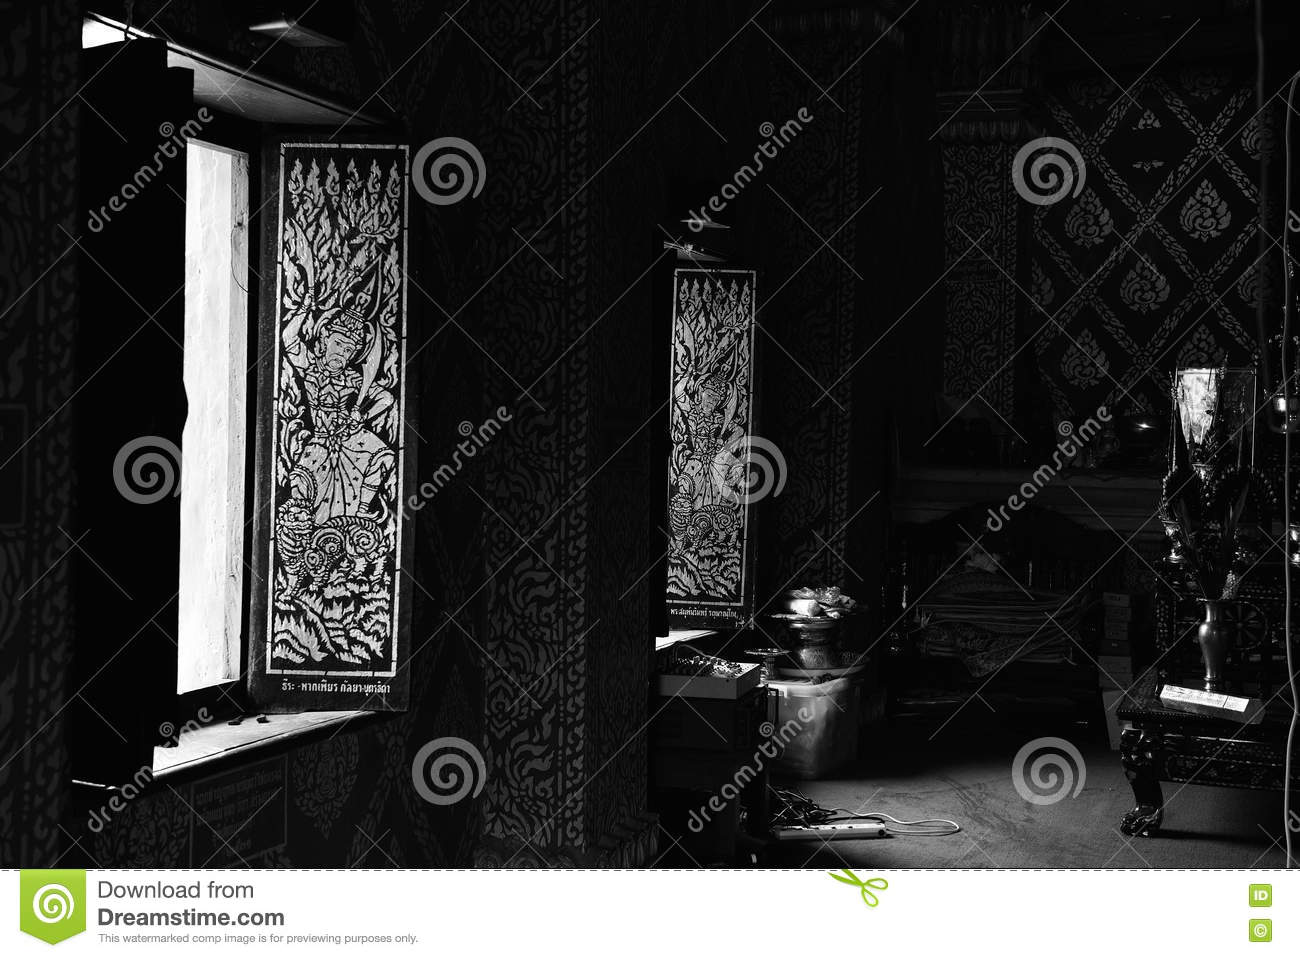 Download Wood carving stock photo. Image of detail, design, sculpture - 71439336